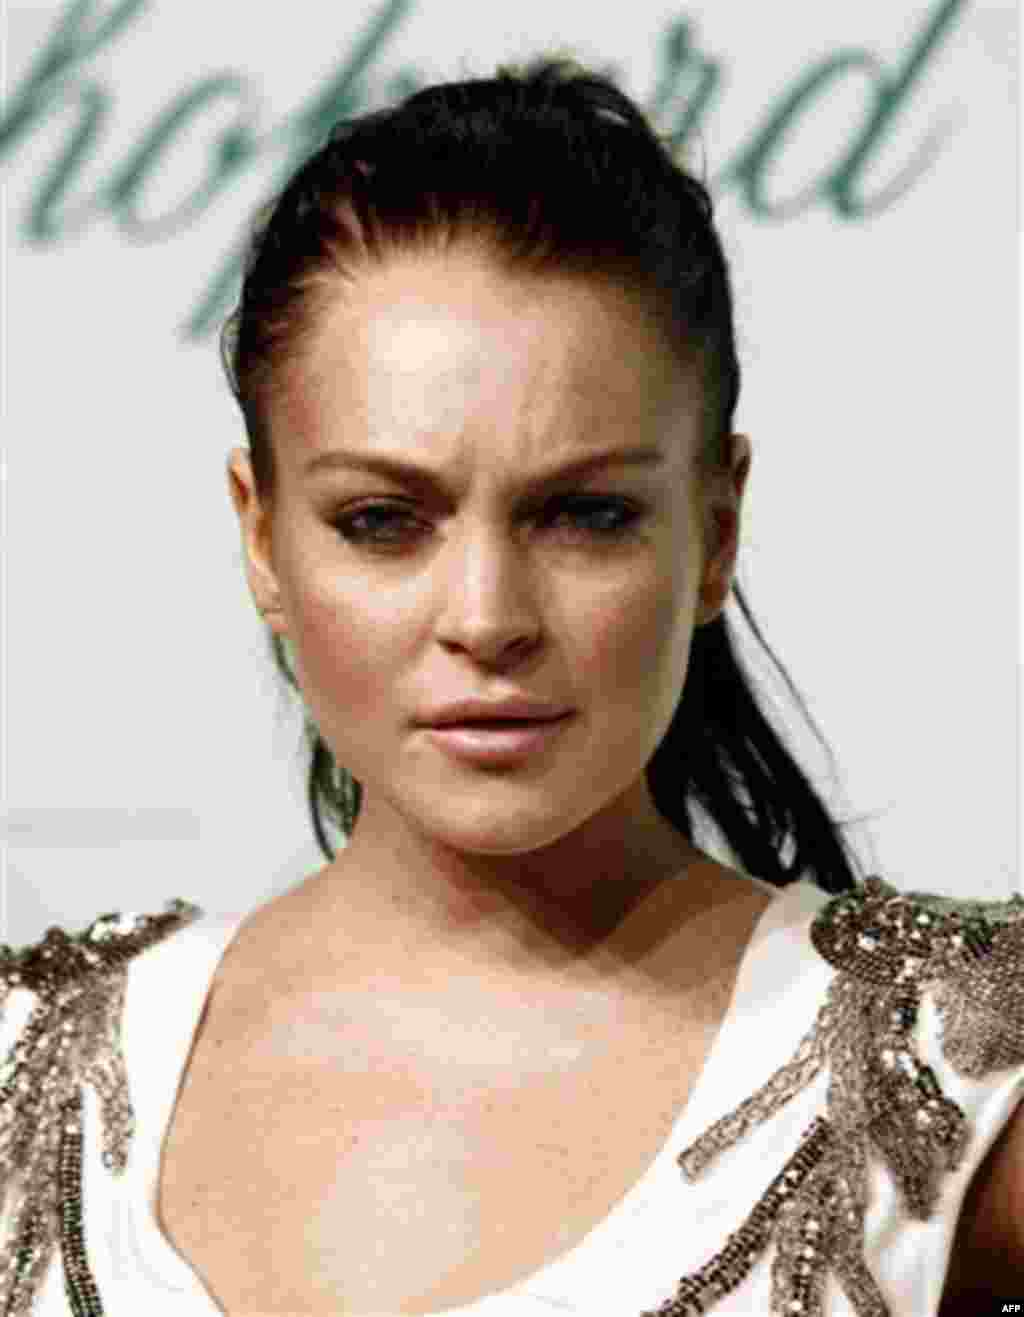 FILE - In this May 17, 2010 file photo, Lindsay Lohan arrives for an event during the 63rd international film festival, in Cannes, France. A judge on Thursday, May 20, 2010 issued a warrant for Lohan's arrest after the actress missed a mandatory hearing.